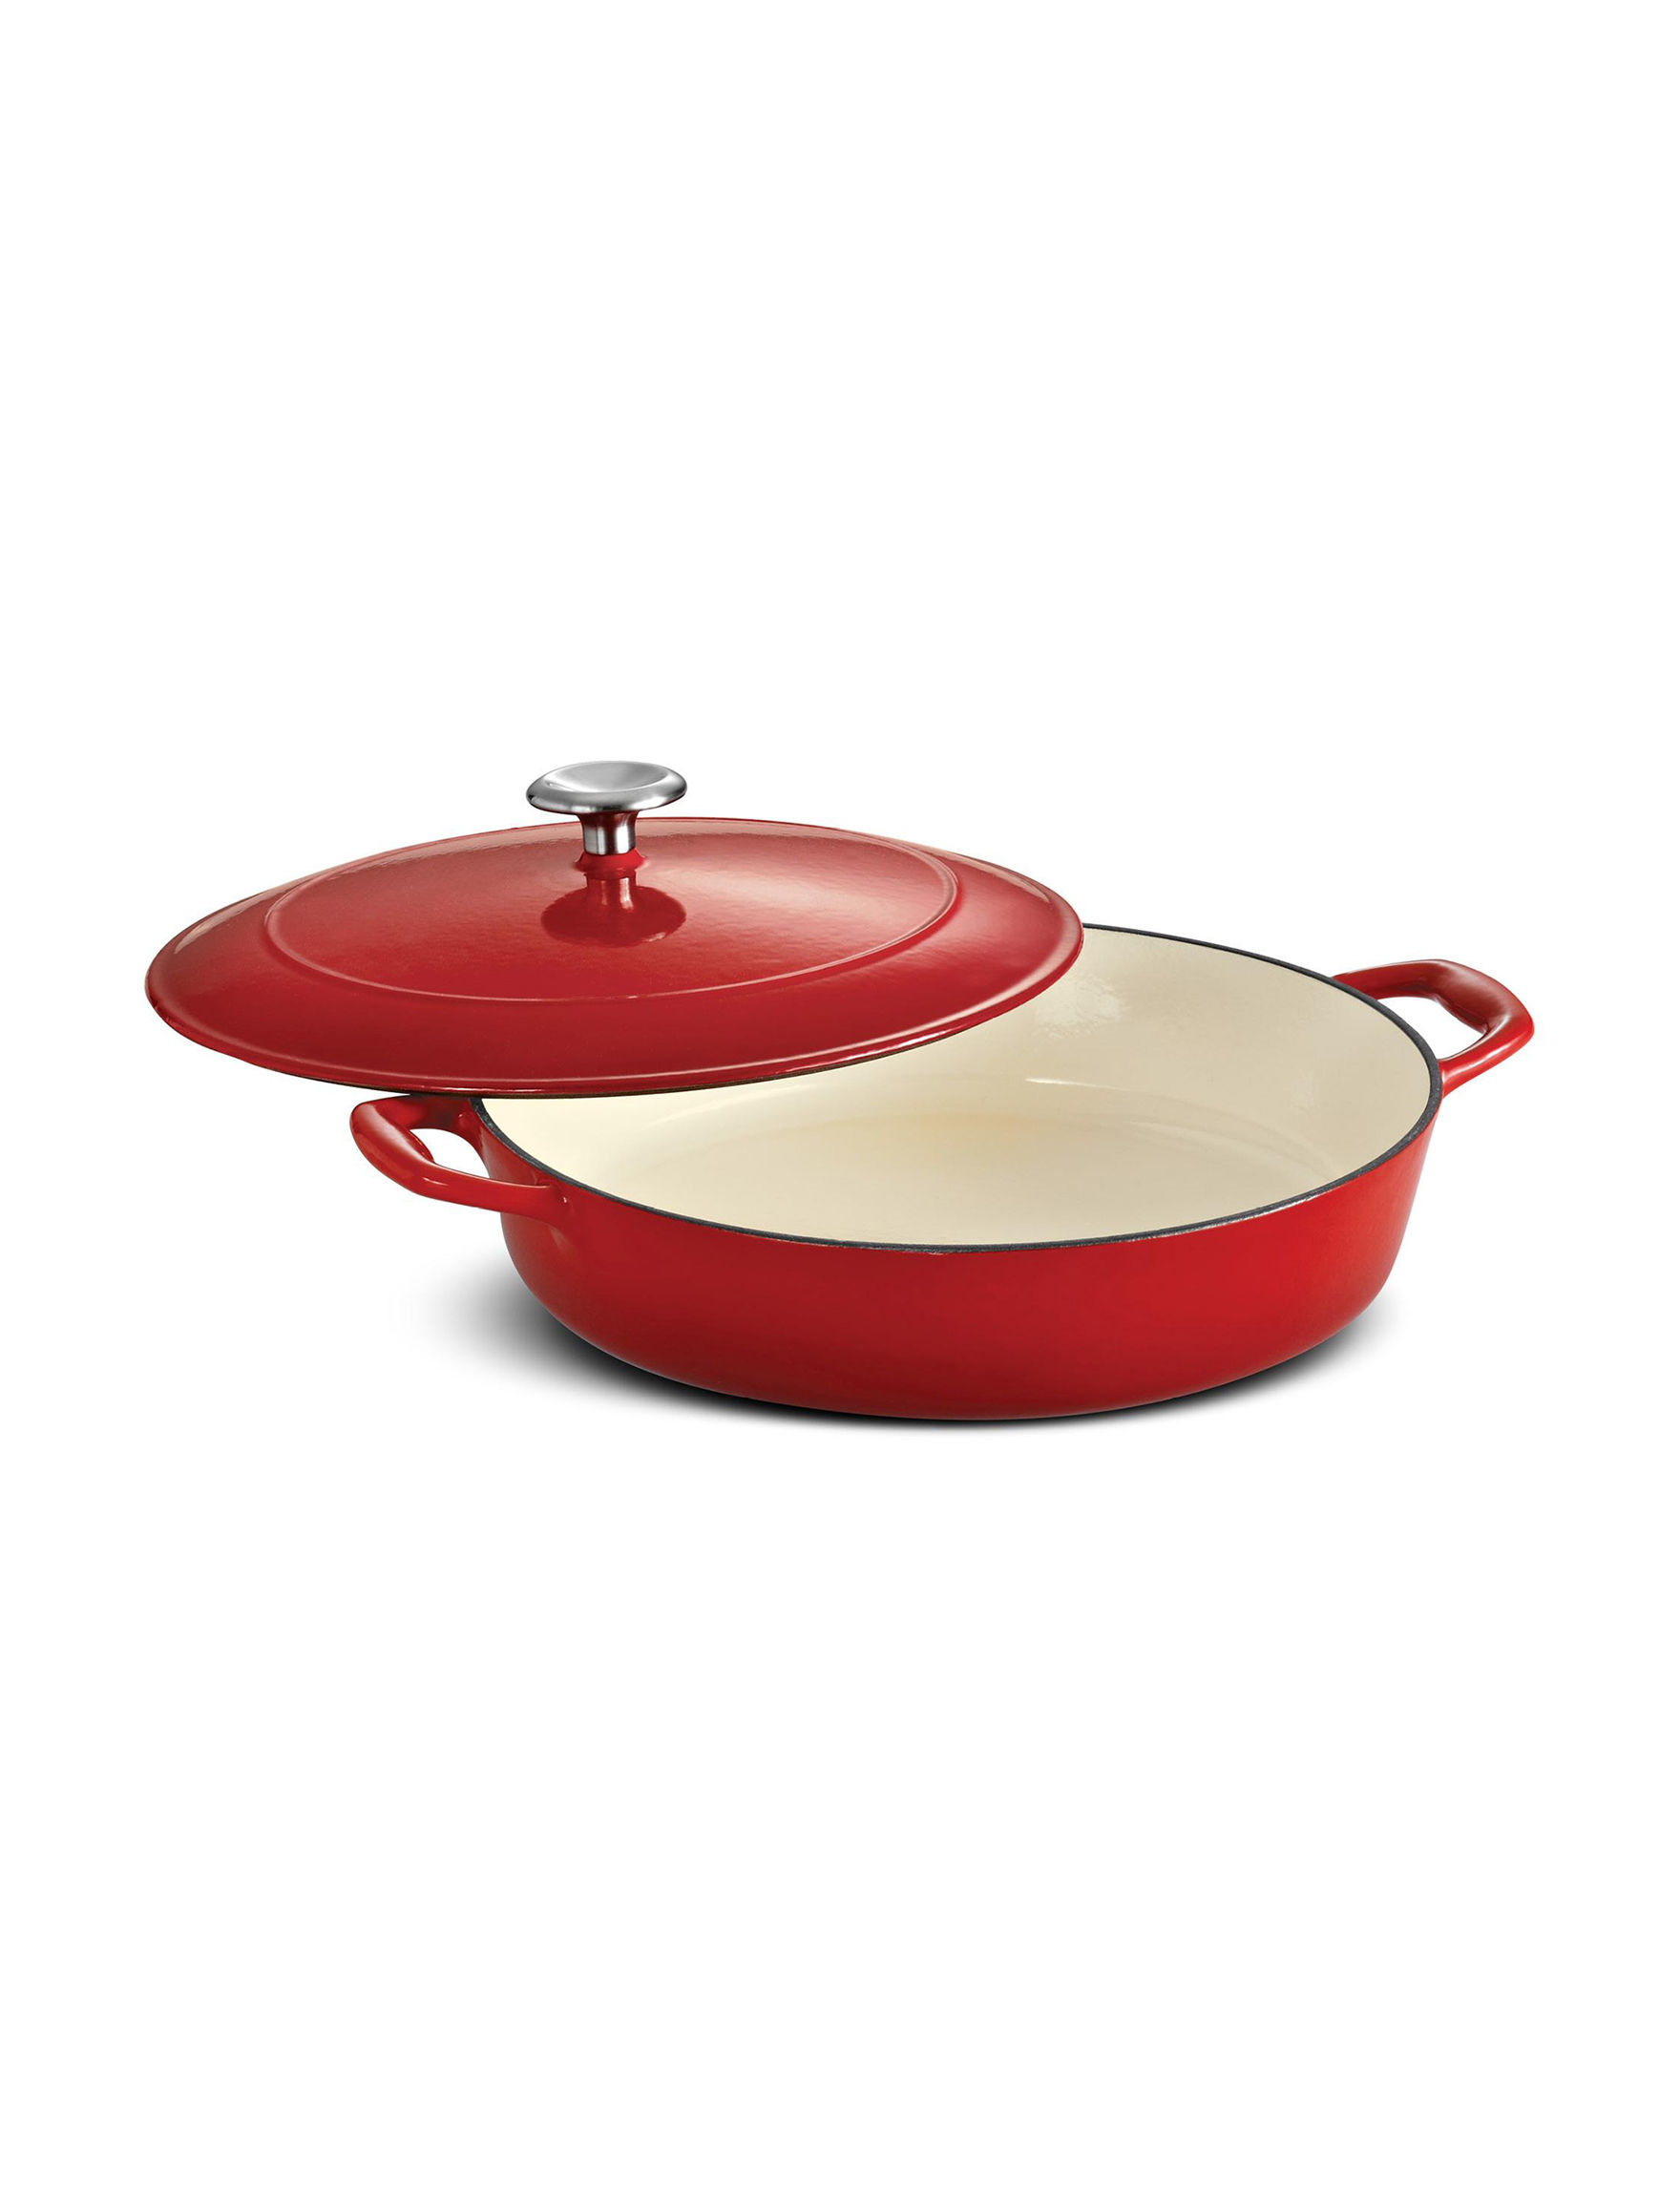 Tramontina Red Cookware